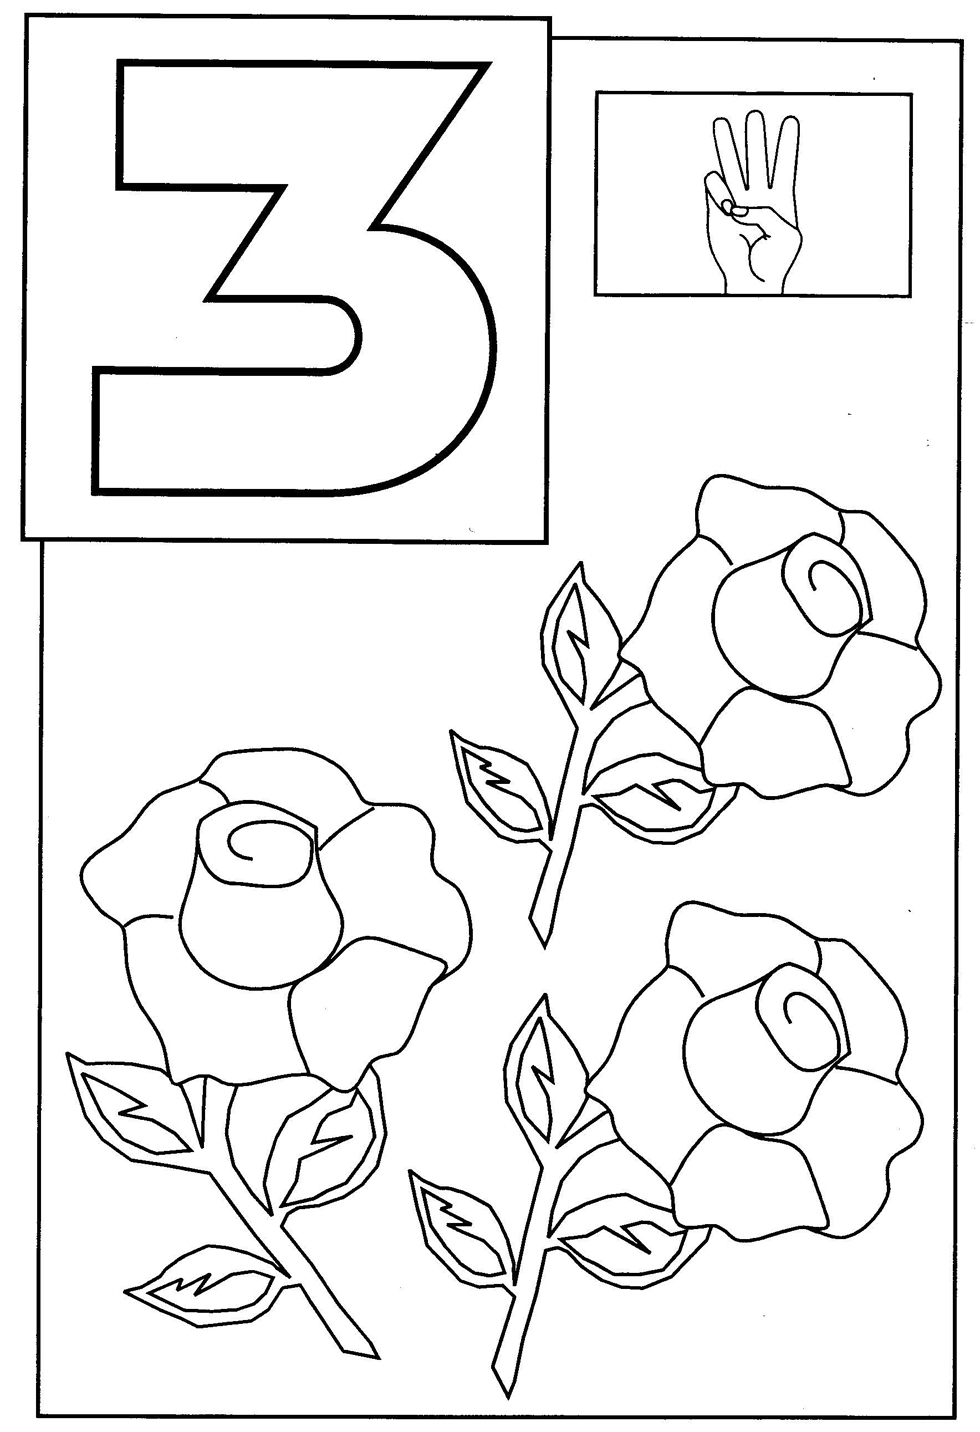 Number 14 Coloring Page At Getdrawings Com Free For Personal Use